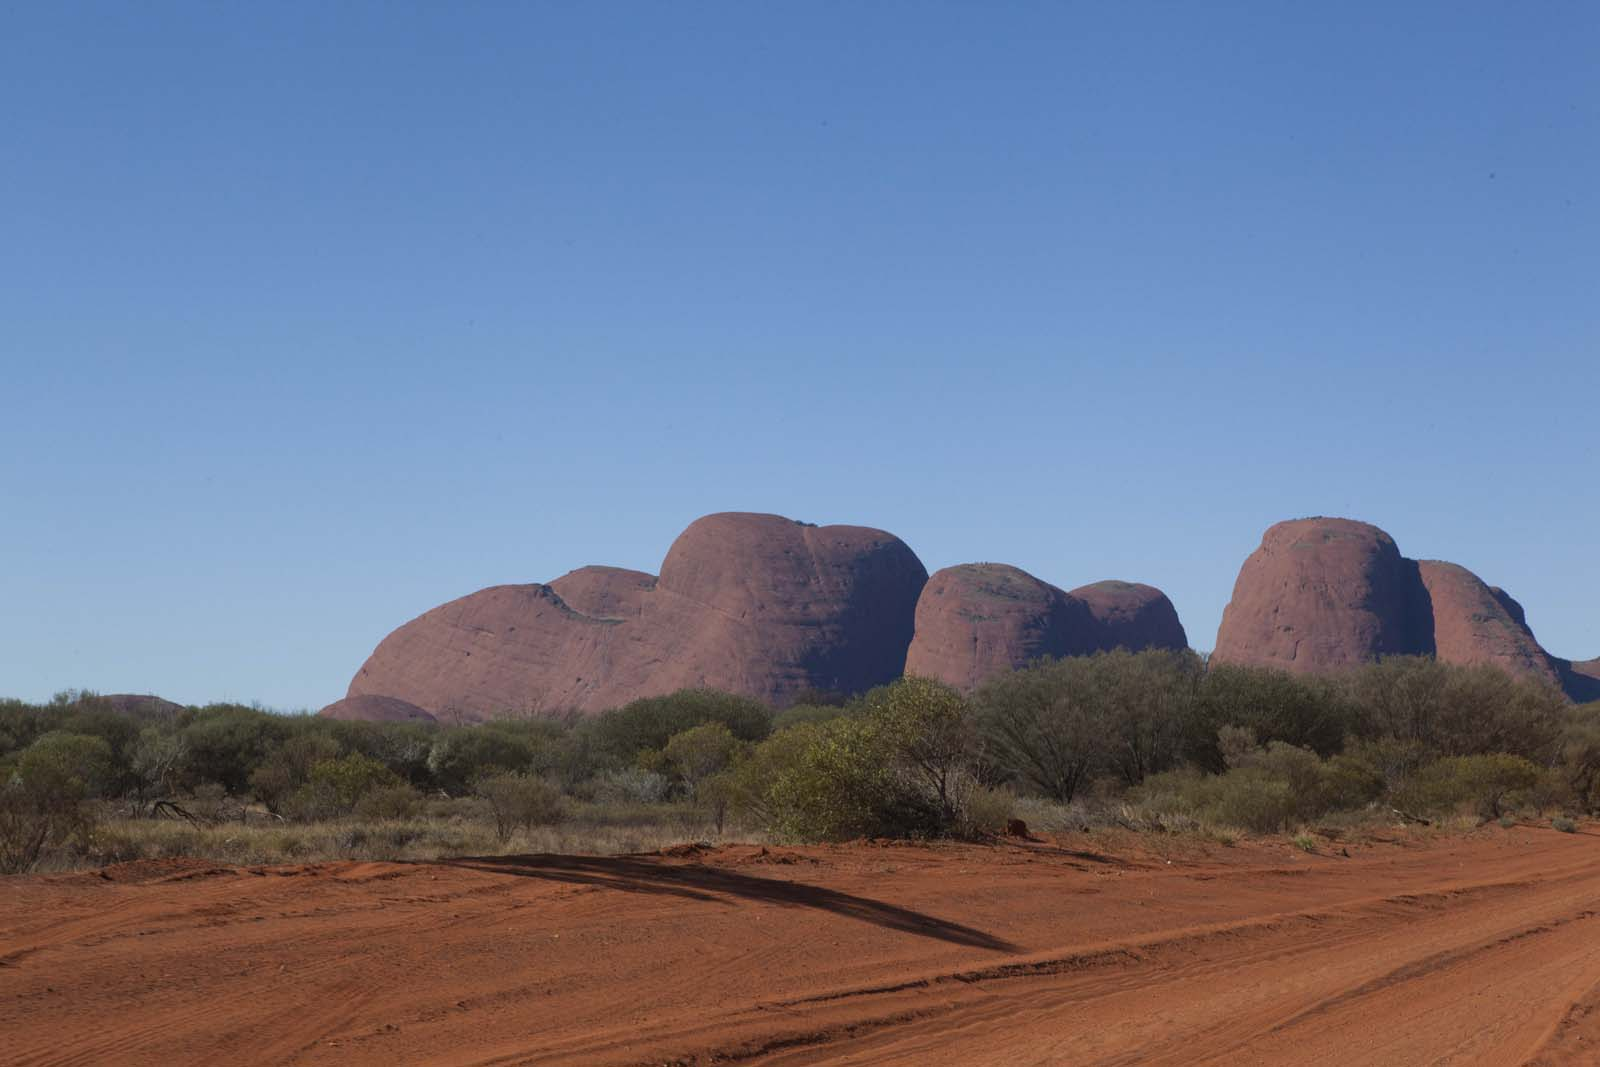 photo of a series of red sandstone rocks emerging from an arid landscape framed by a blue sky